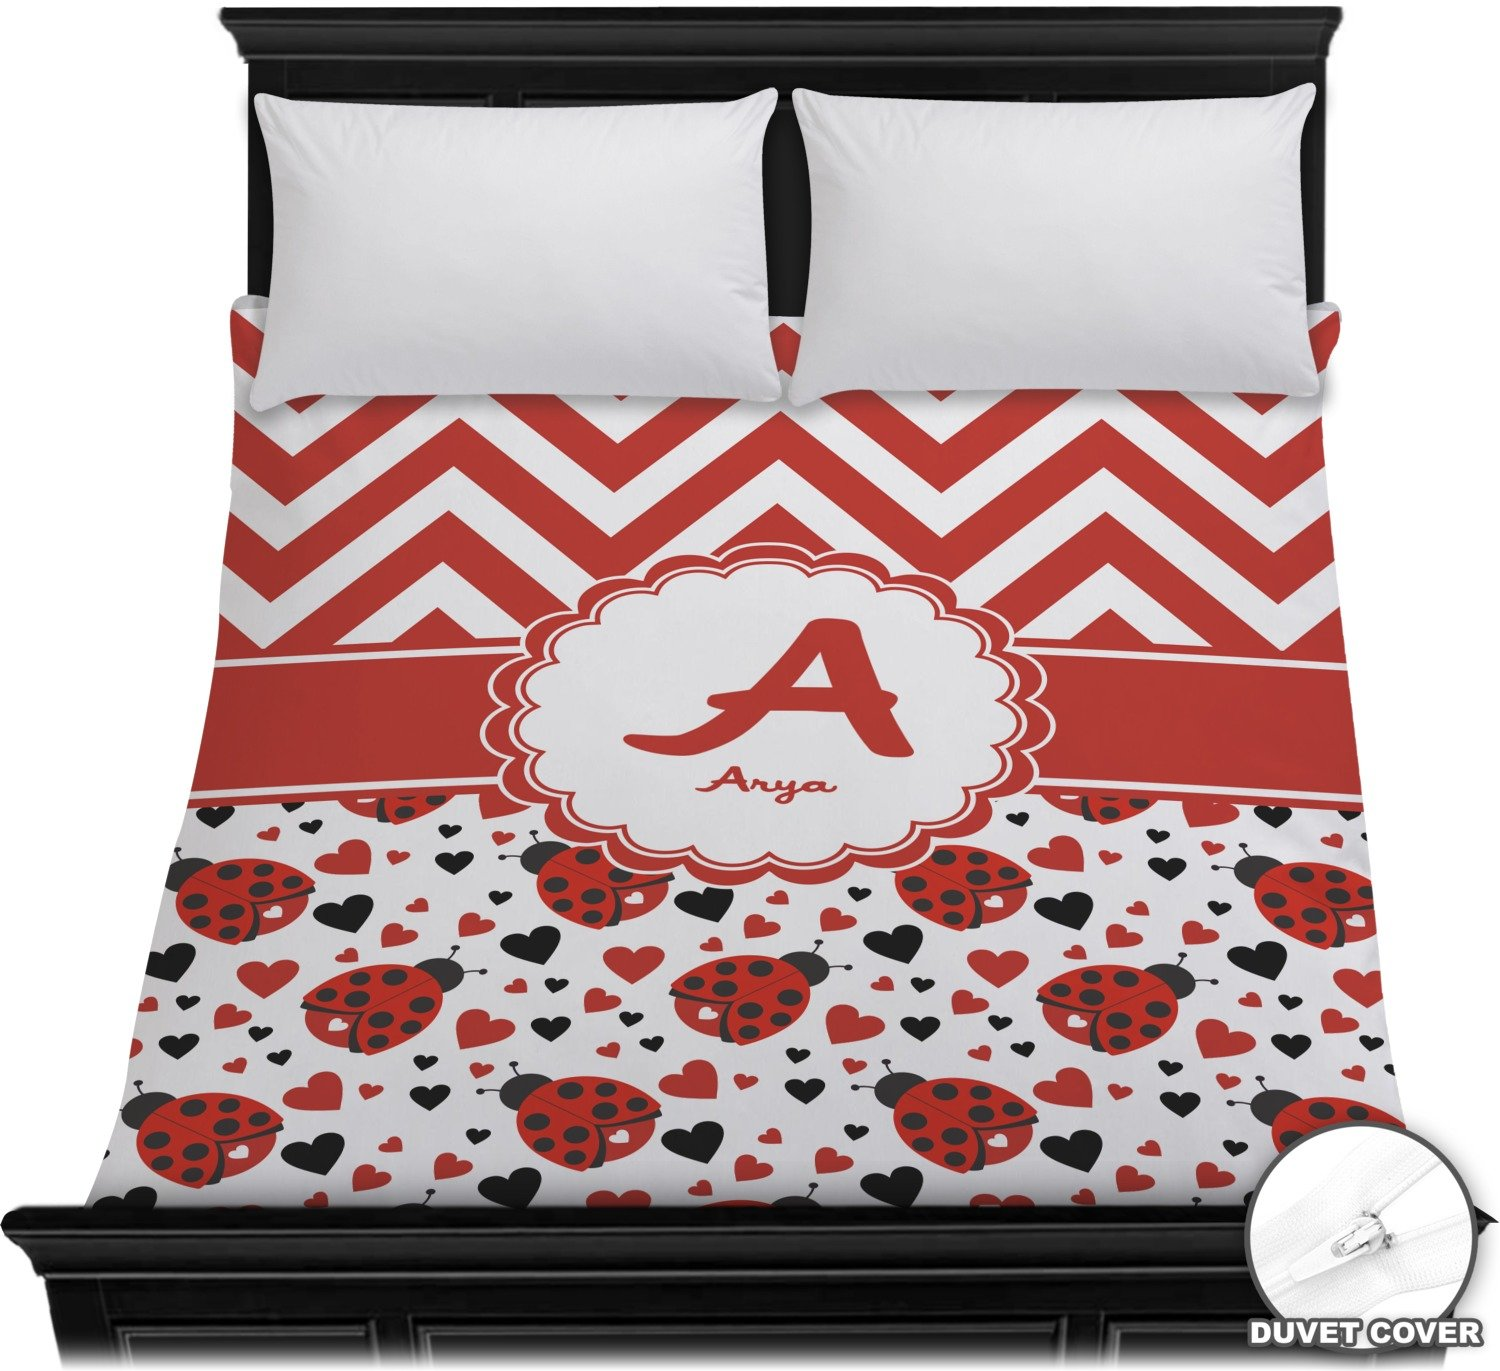 Ladybugs & Chevron Duvet Cover - Full / Queen (Personalized)